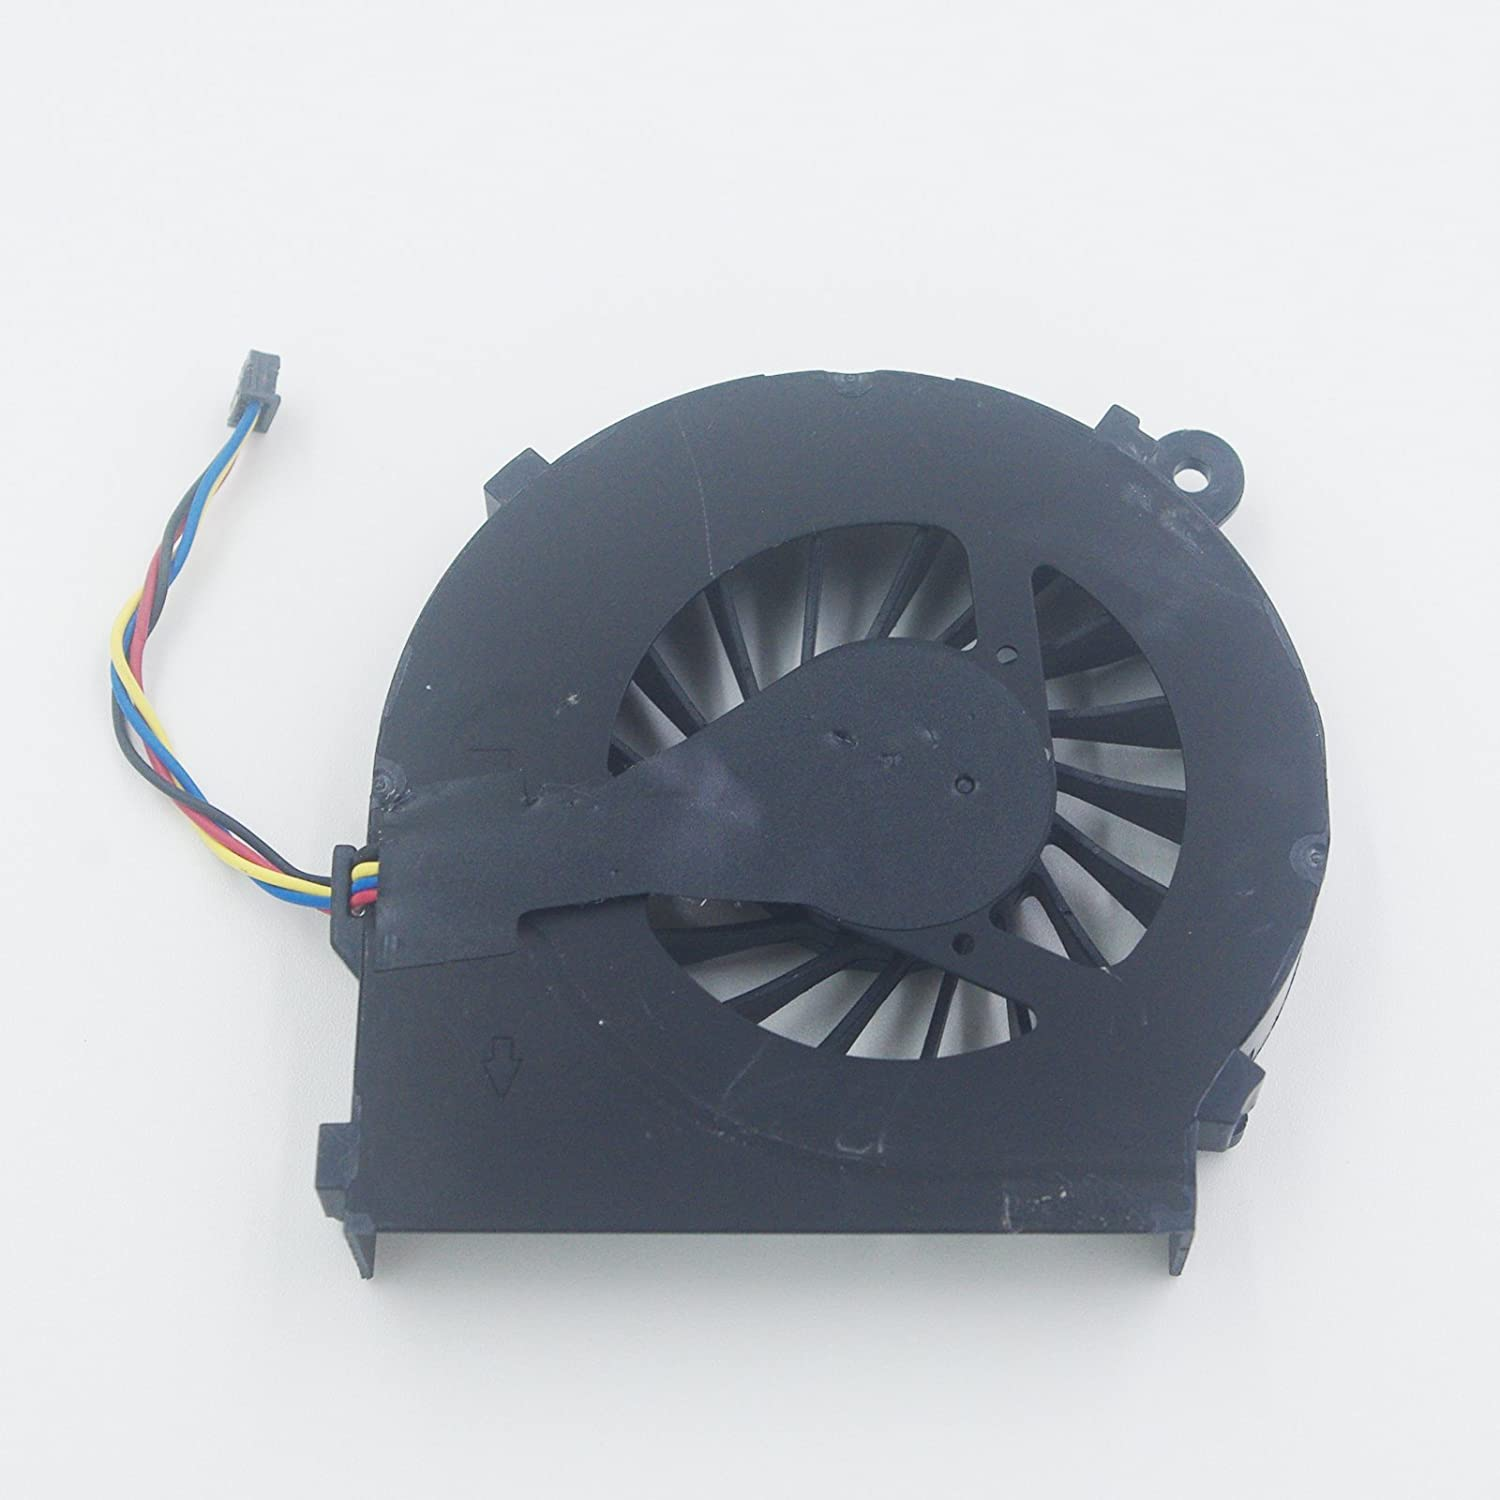 New CPU Cooling Cooler Fan for HP 450 455 2000 G6-1A G6-1B series Laptop 685086-001 688281-001